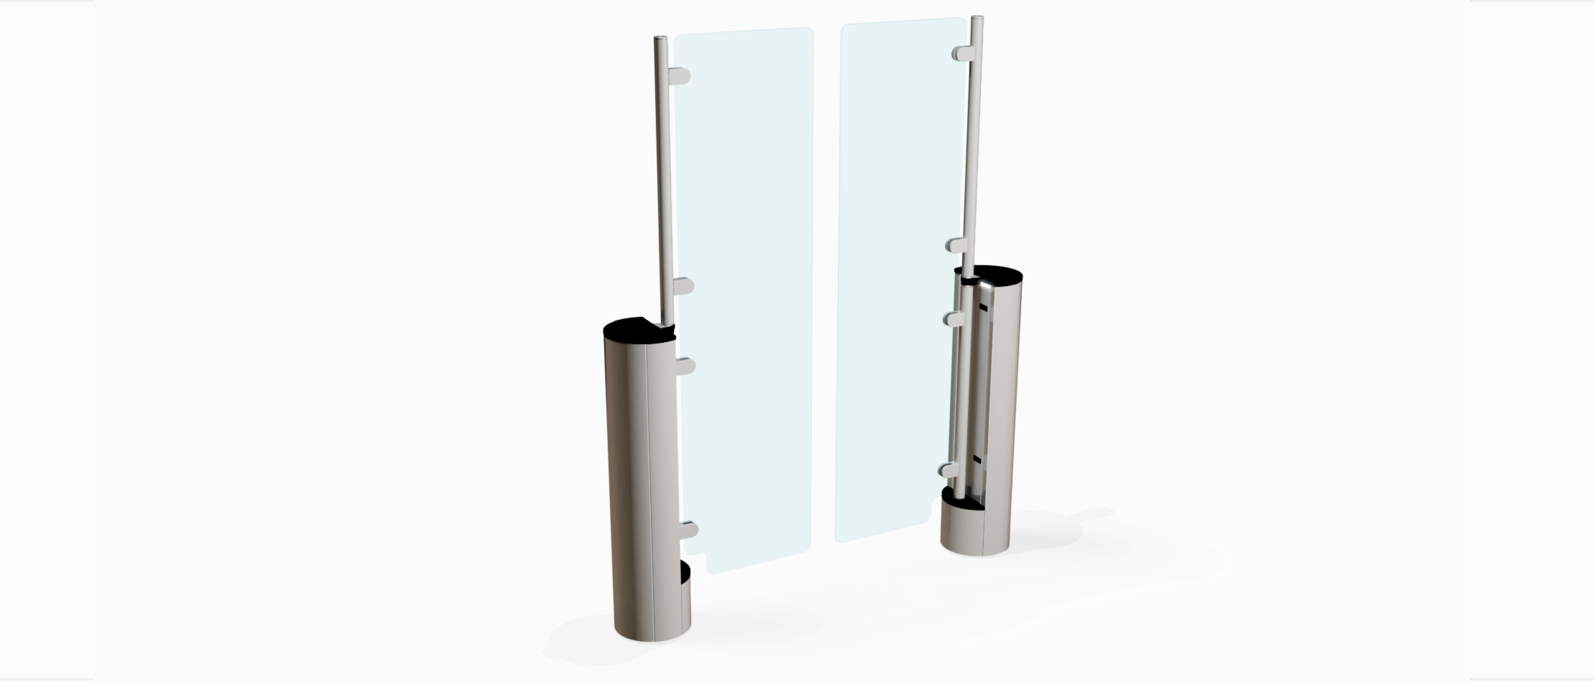 Fastlane Intelligate 300 entrance control security turnstile